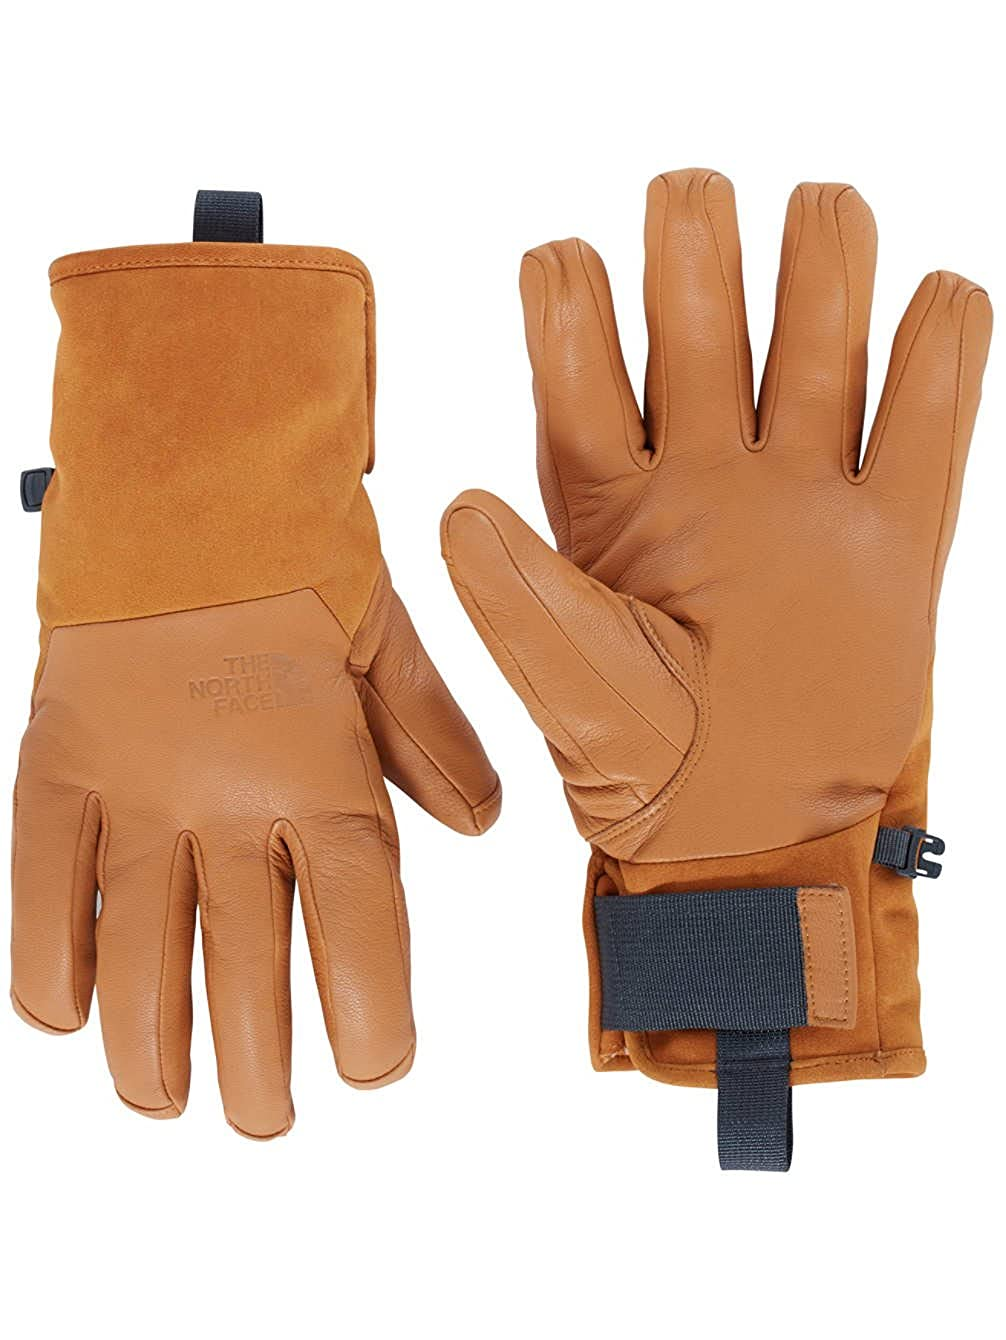 THE NORTH FACE Herren Handschuh Leder Il Solo Handschuhe